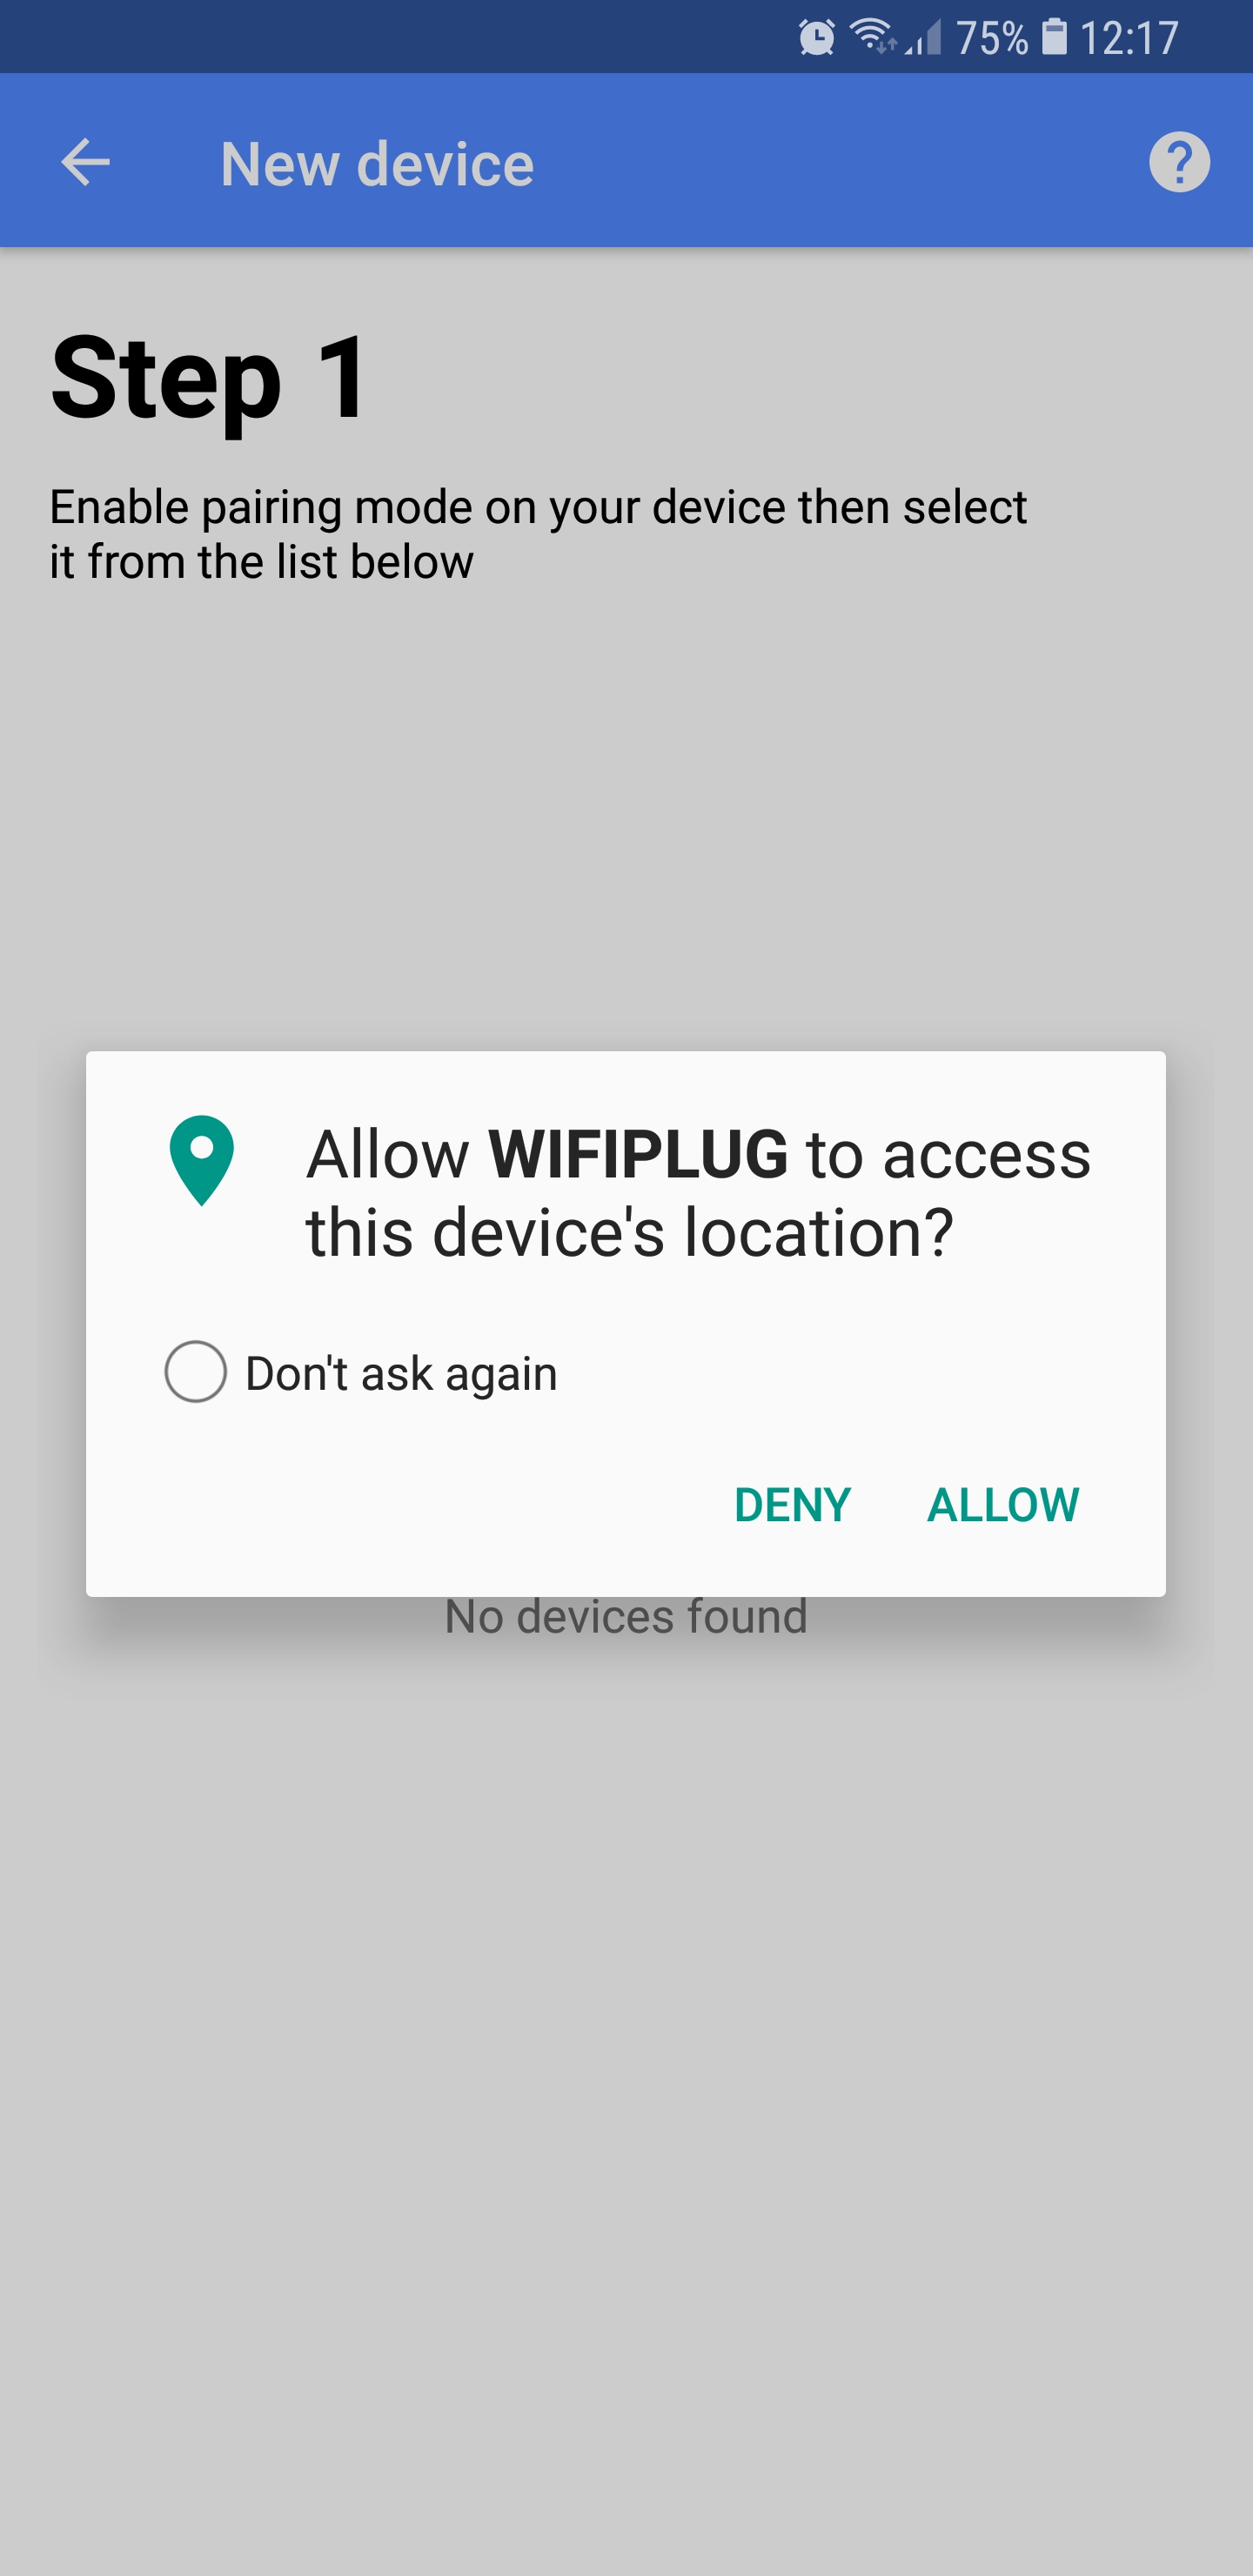 New_Device_-_Access_Location.jpg